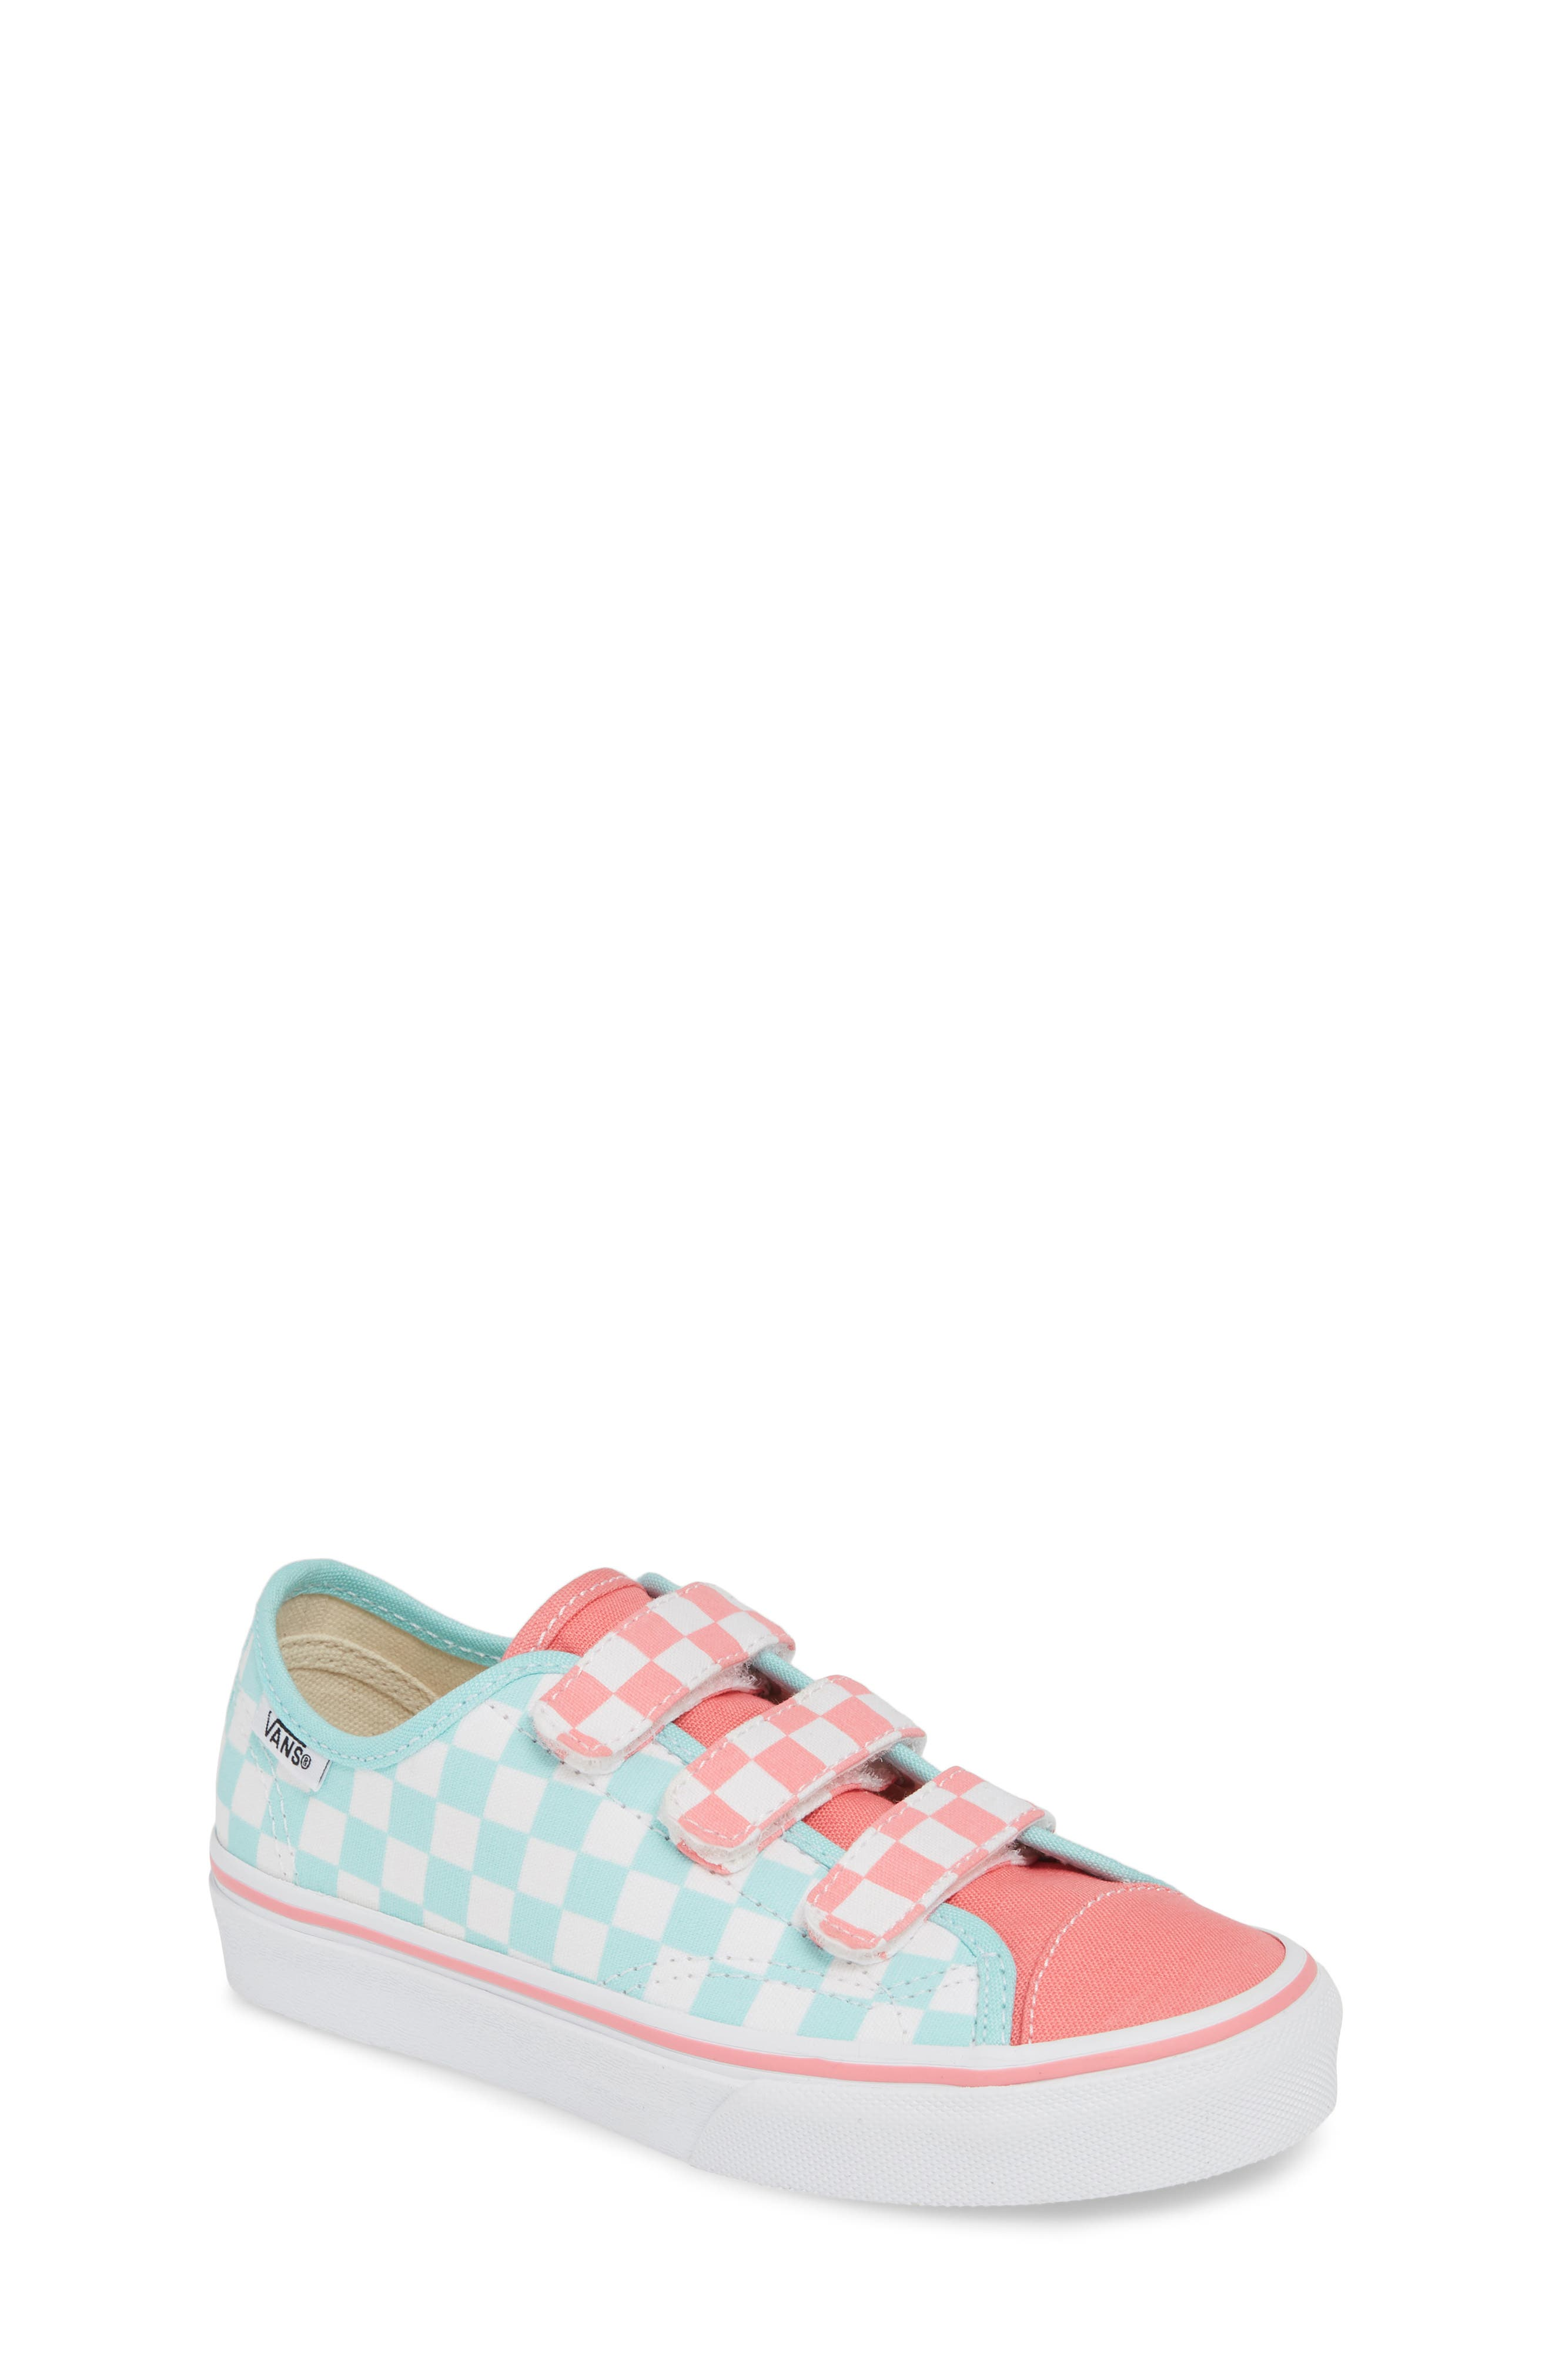 VANS, Style 23V Sneaker, Main thumbnail 1, color, BLUE TINT/ STRAWBERRY PINK